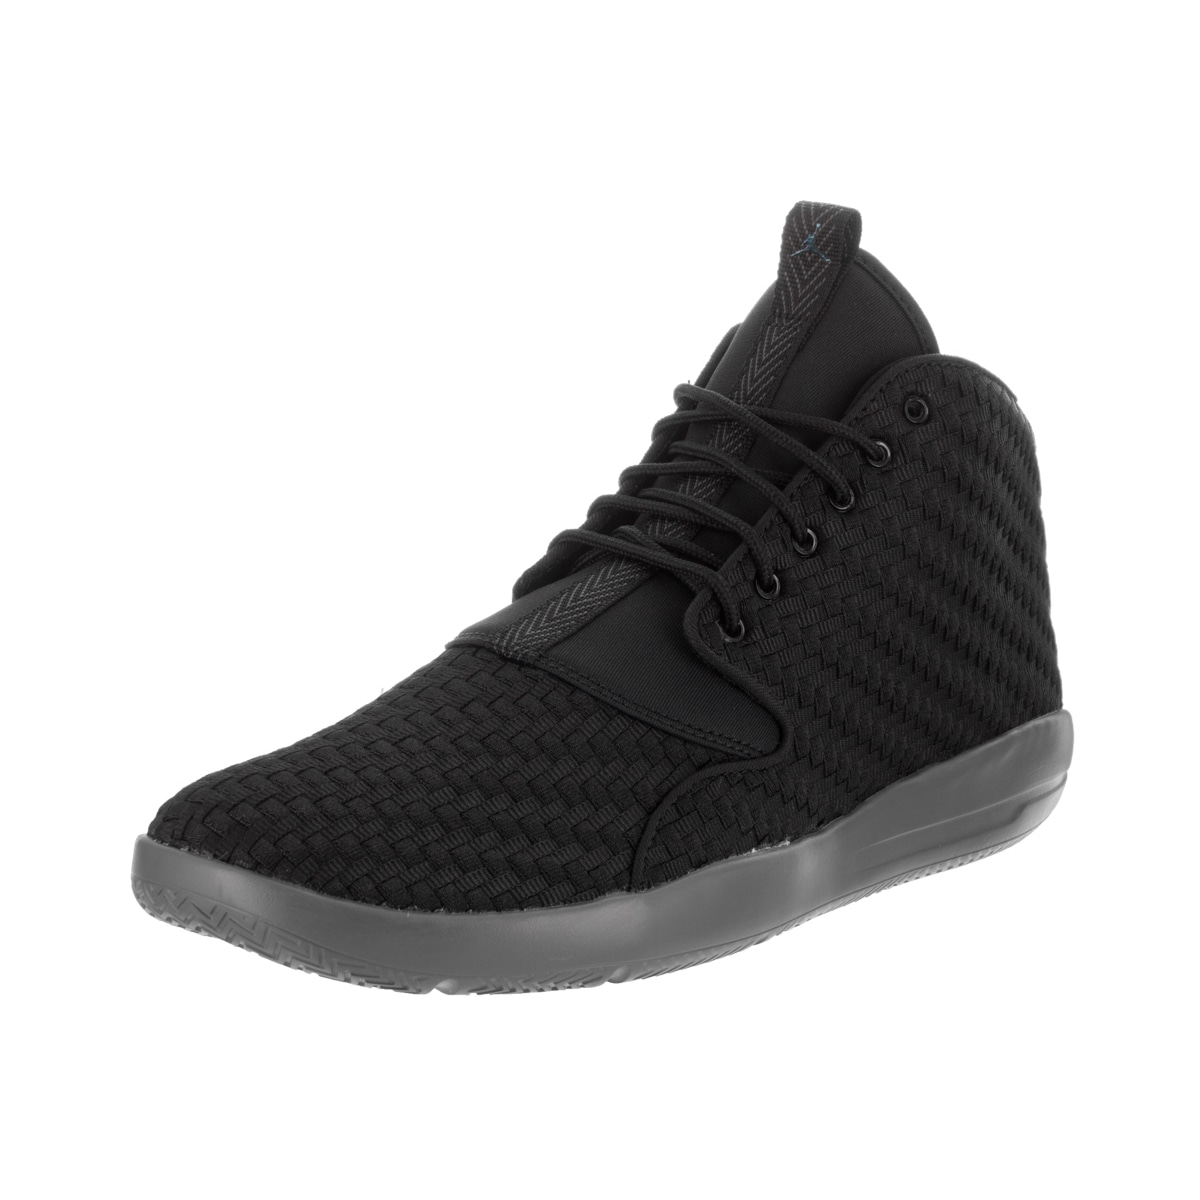 Shop Nike Jordan Men s Jordan Eclipse Chukka Black Basketball Shoes - Free  Shipping Today - Overstock - 14595260 b7a5890b7